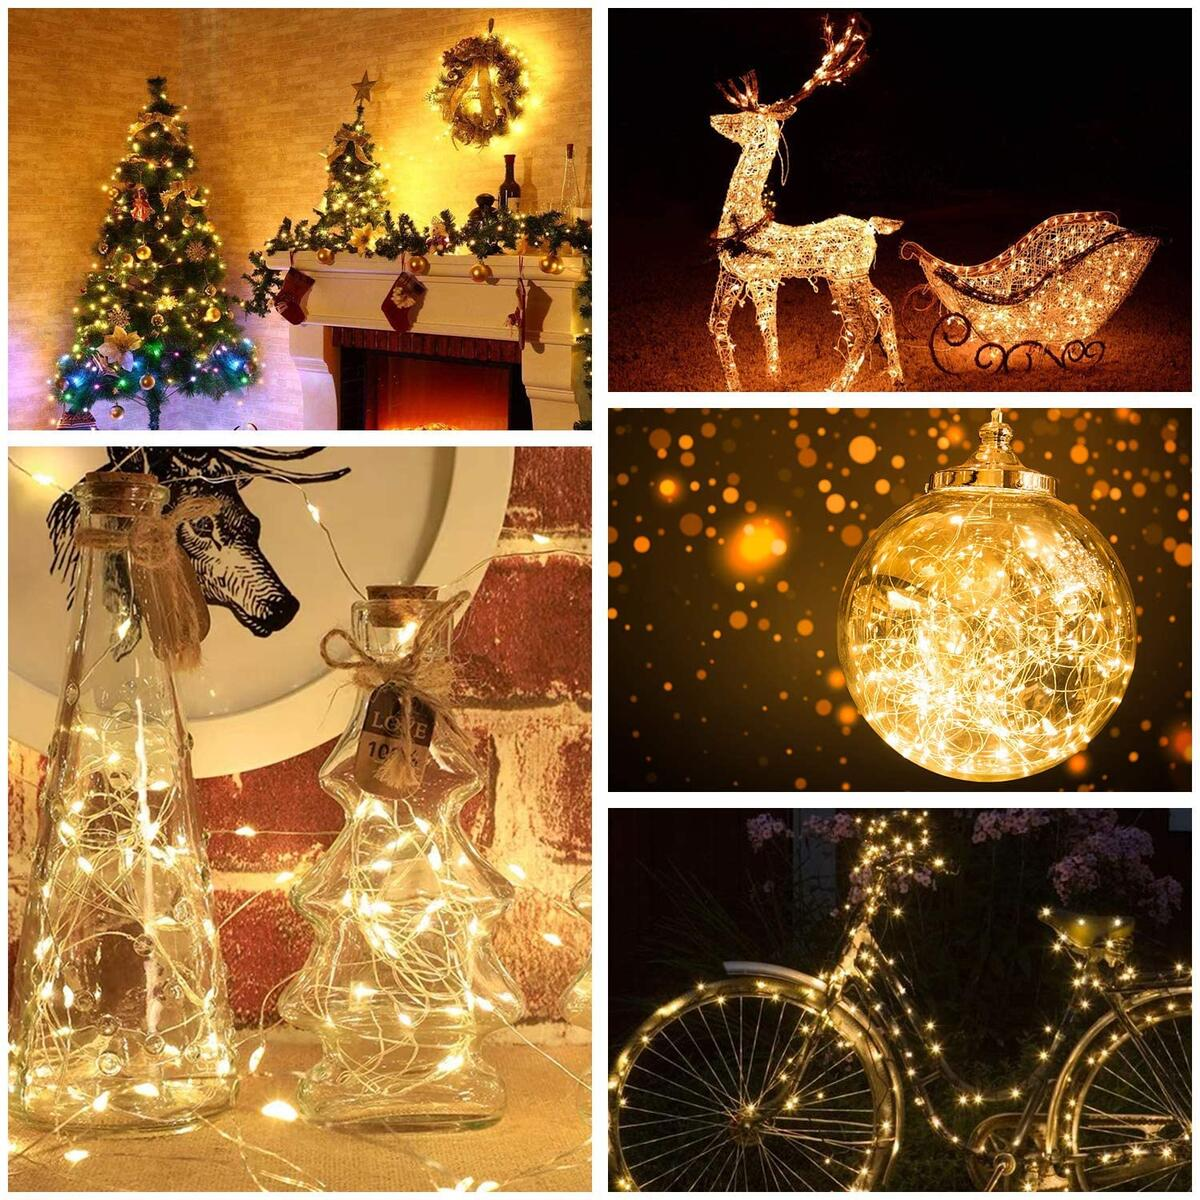 Axwcon LED Fairy Lights - 16.4FT/50LED USB Operated String Lights Christmas Decorations Bedroom Curtain Party Home Wedding Garden Outdoor Indoor Wall (Warm White)